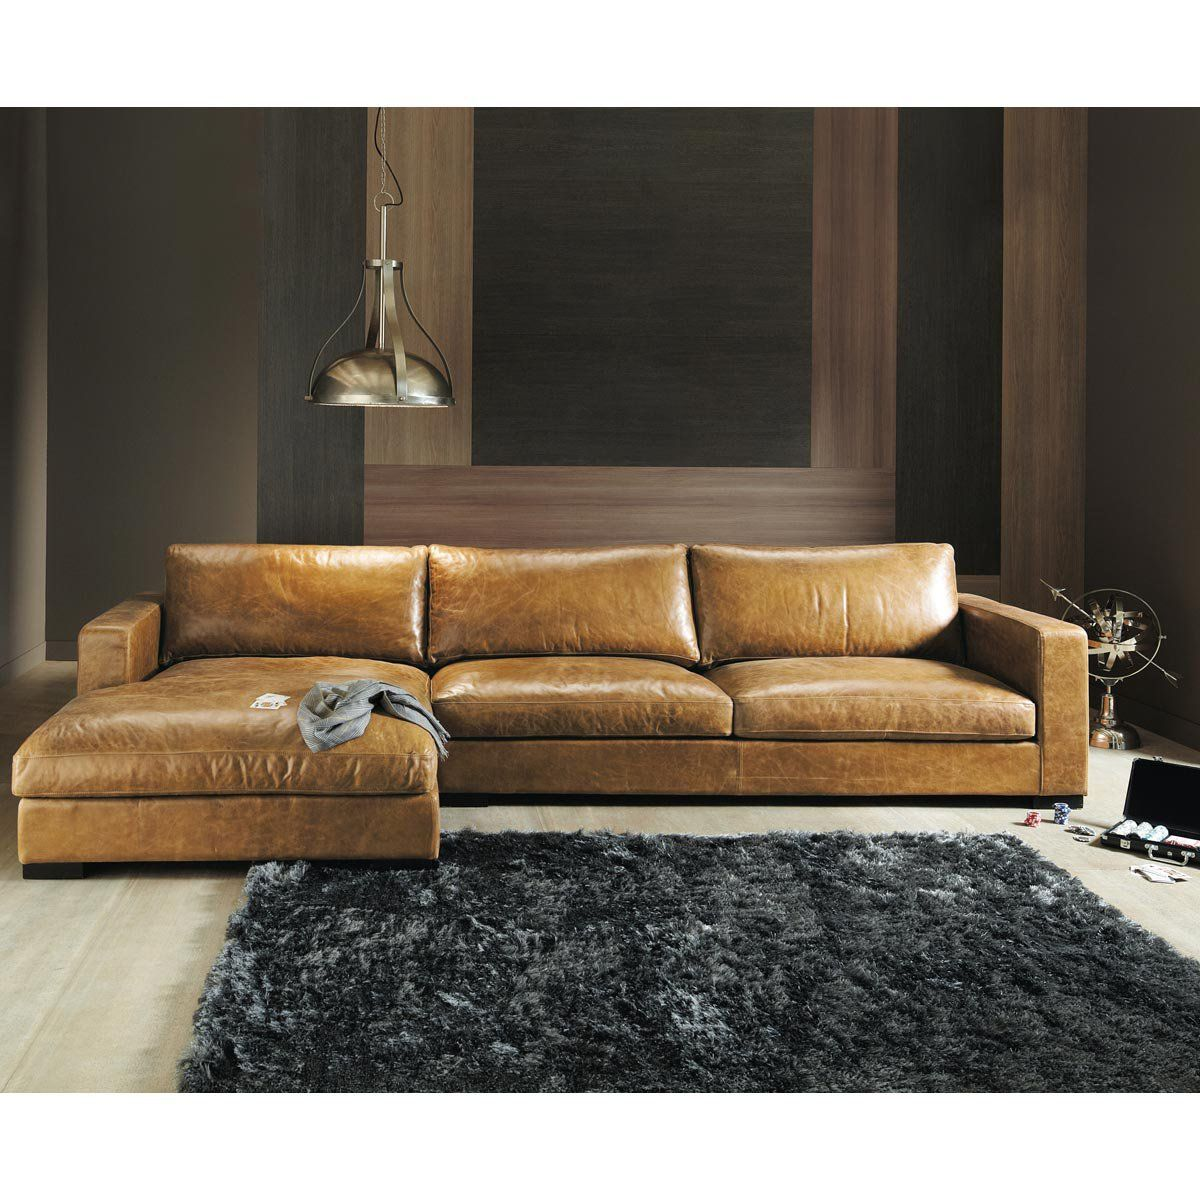 Vintage Brown Leather Sectional Corner Sofa Seats 3 4 Lincoln Leather Corner Sofa Brown Living Room Decor Leather Lounge